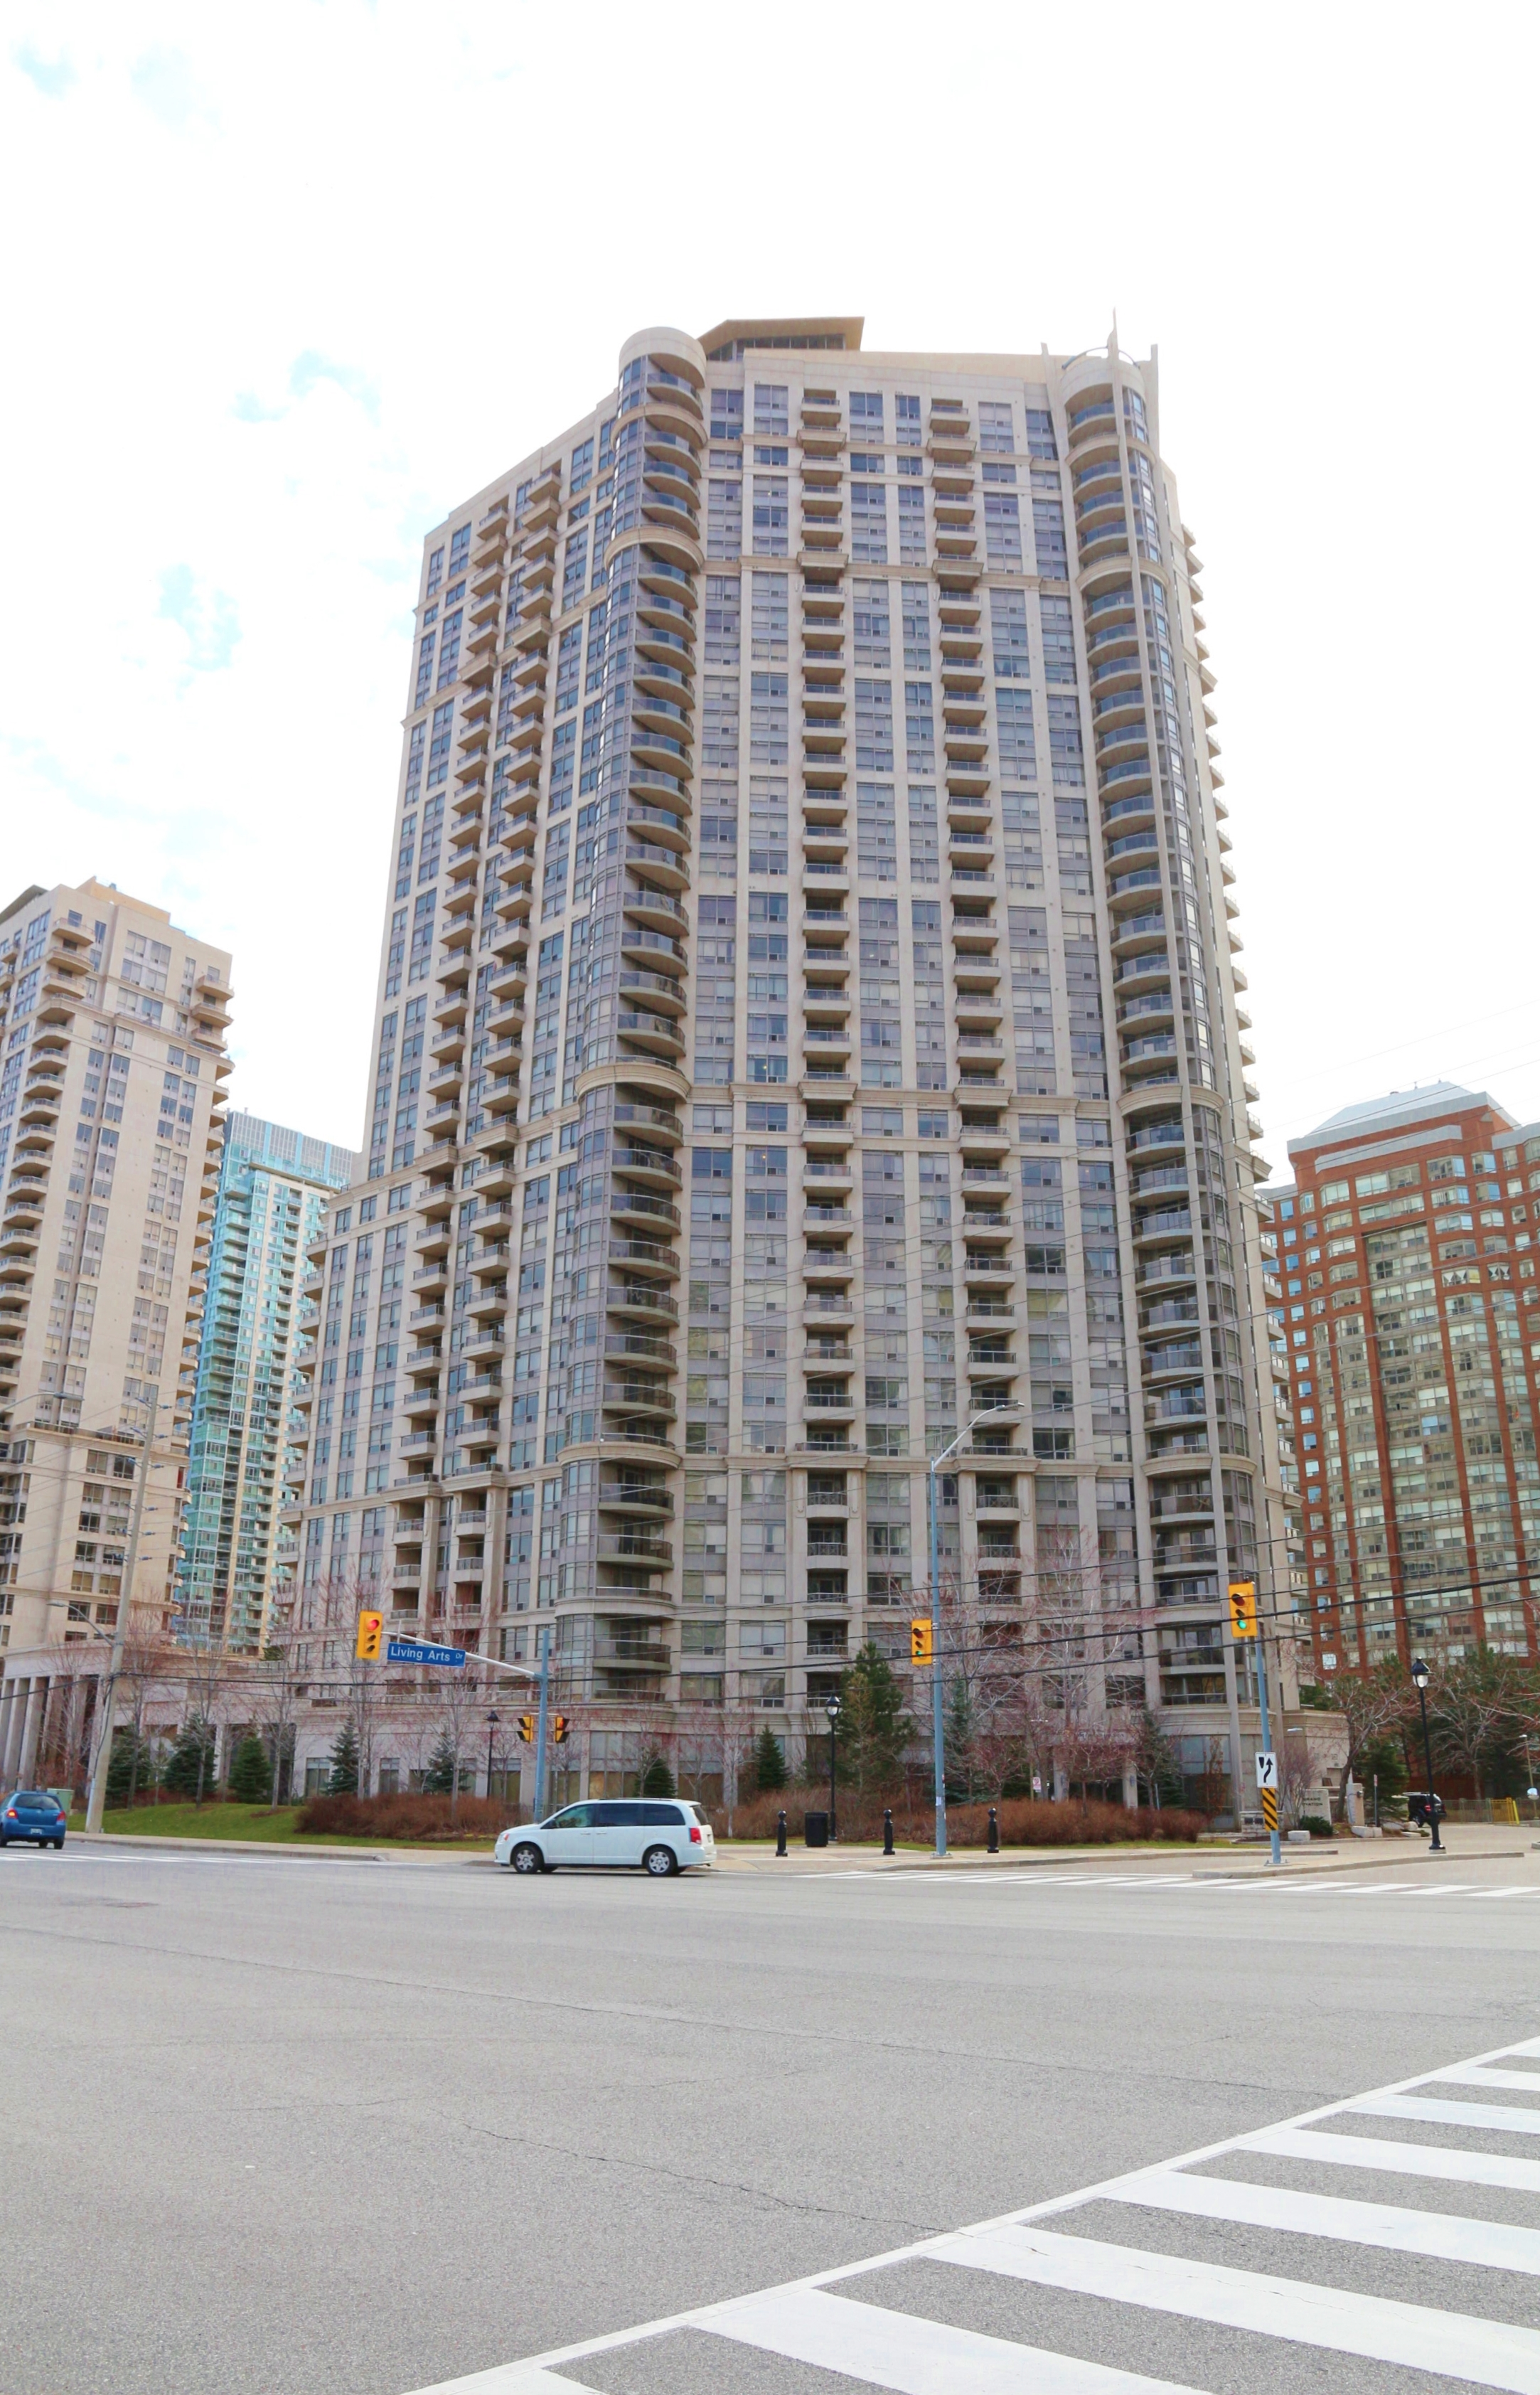 Desirable Ground Level 1+1 Condo In Mississauga! Oversized Private Terrace!